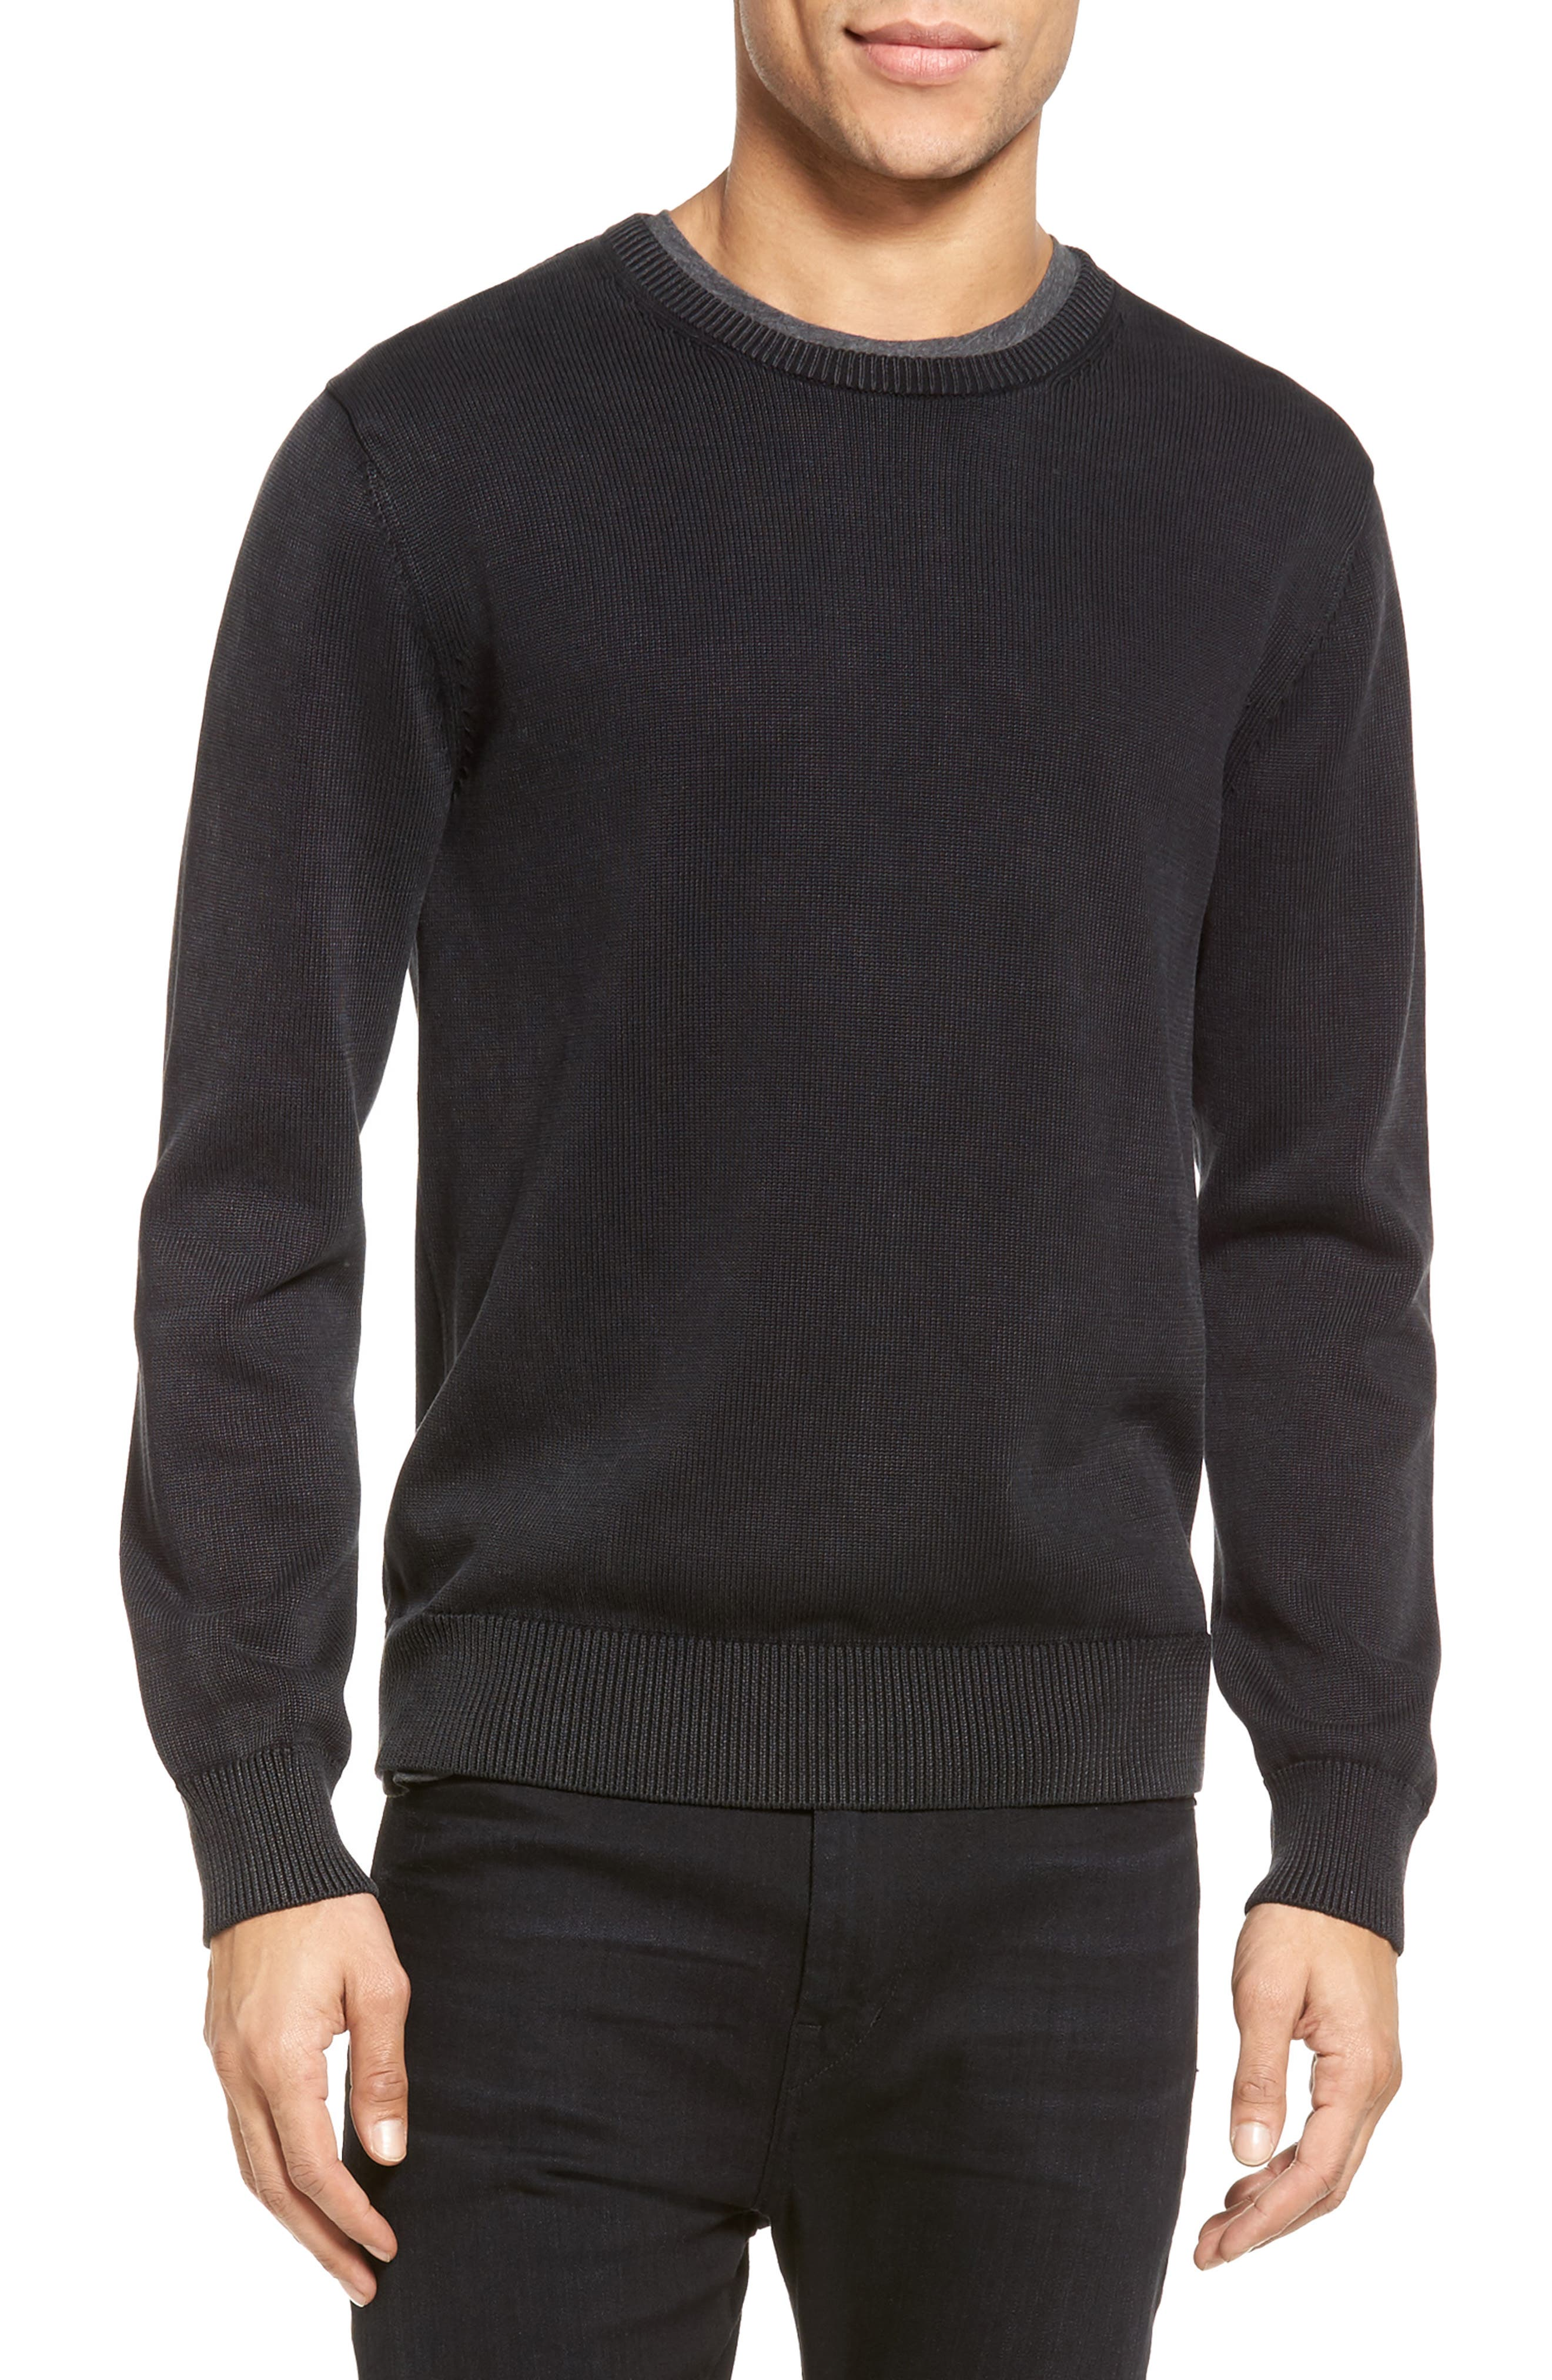 Crewneck Pullover,                             Main thumbnail 1, color,                             001